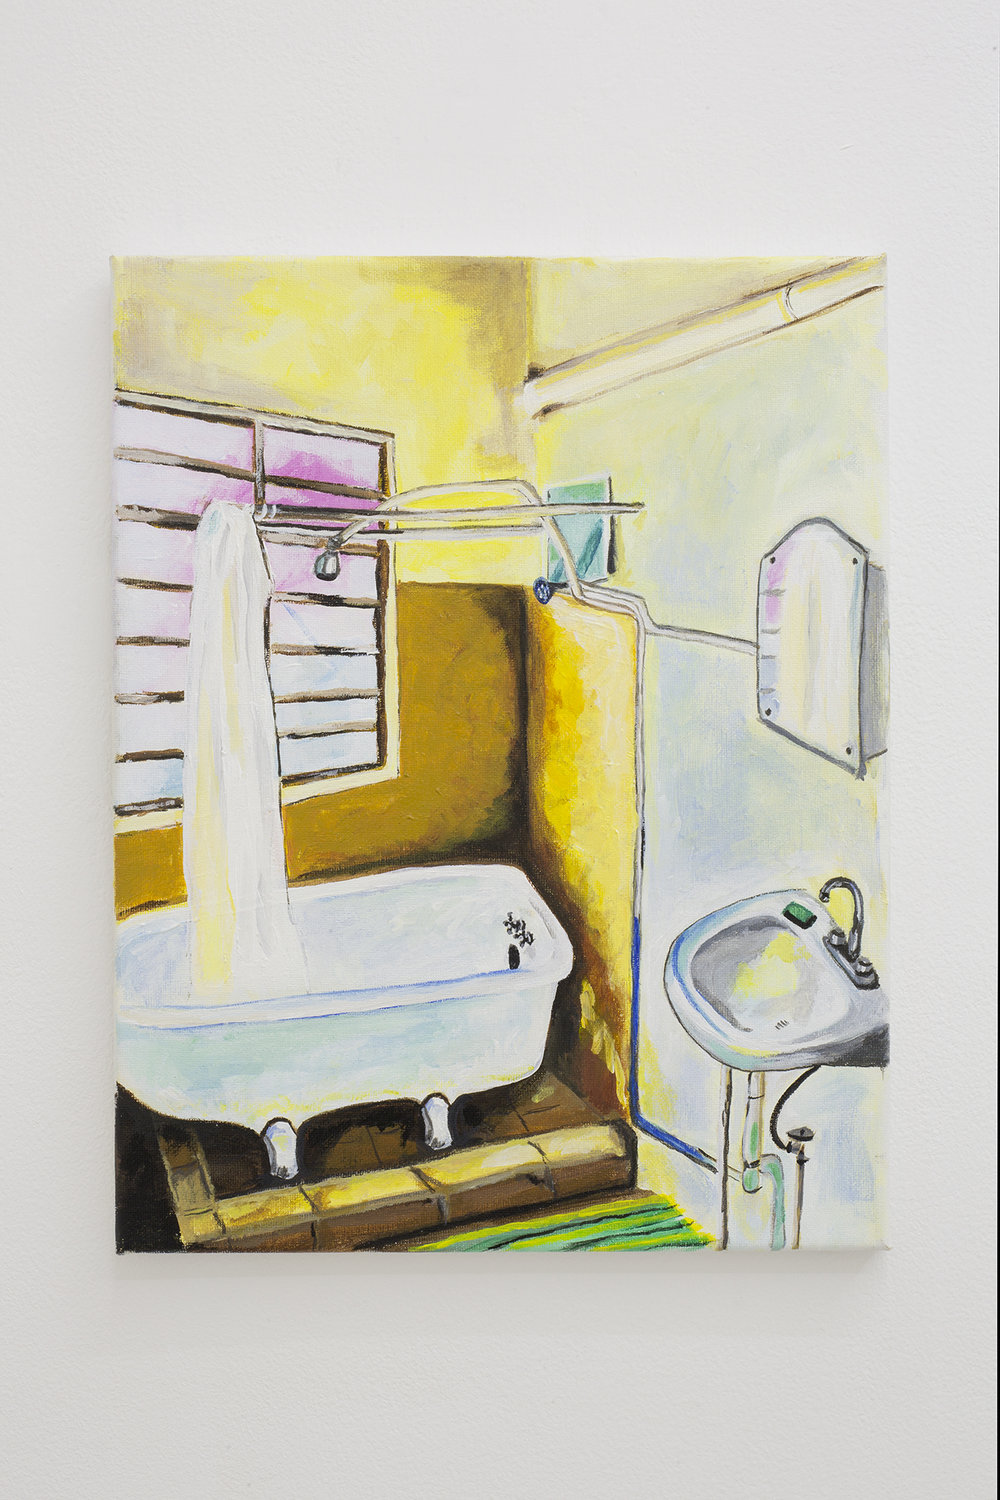 Shana Sharp, The Shower, 2018. Acrylic on canvas.  11 x 14 inch (27.94 x 35.56 cm)